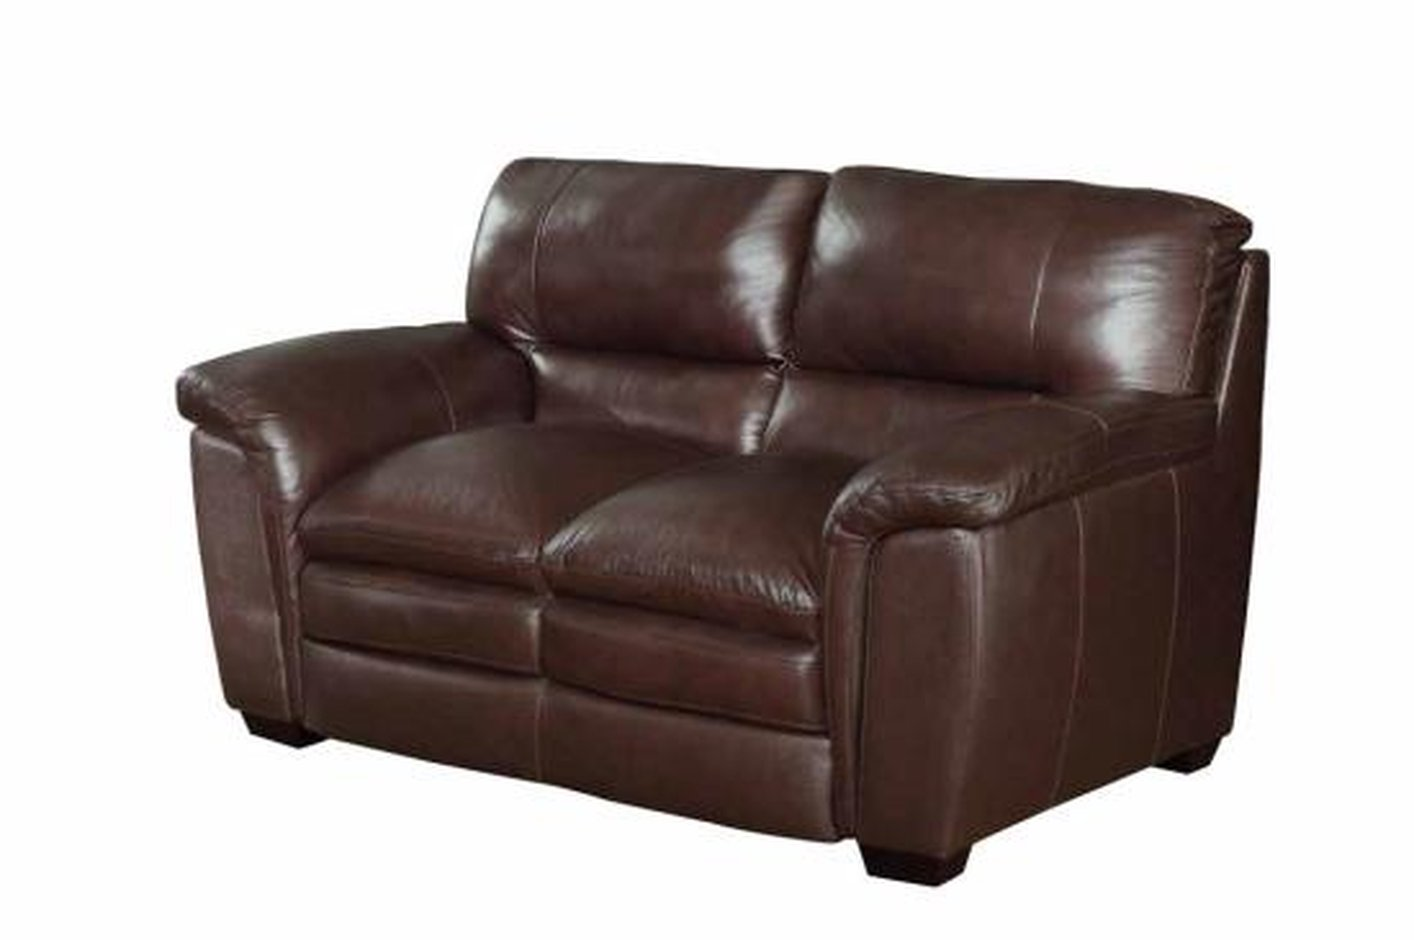 Coaster burton 503972 brown leather loveseat steal a for Couch and loveseat